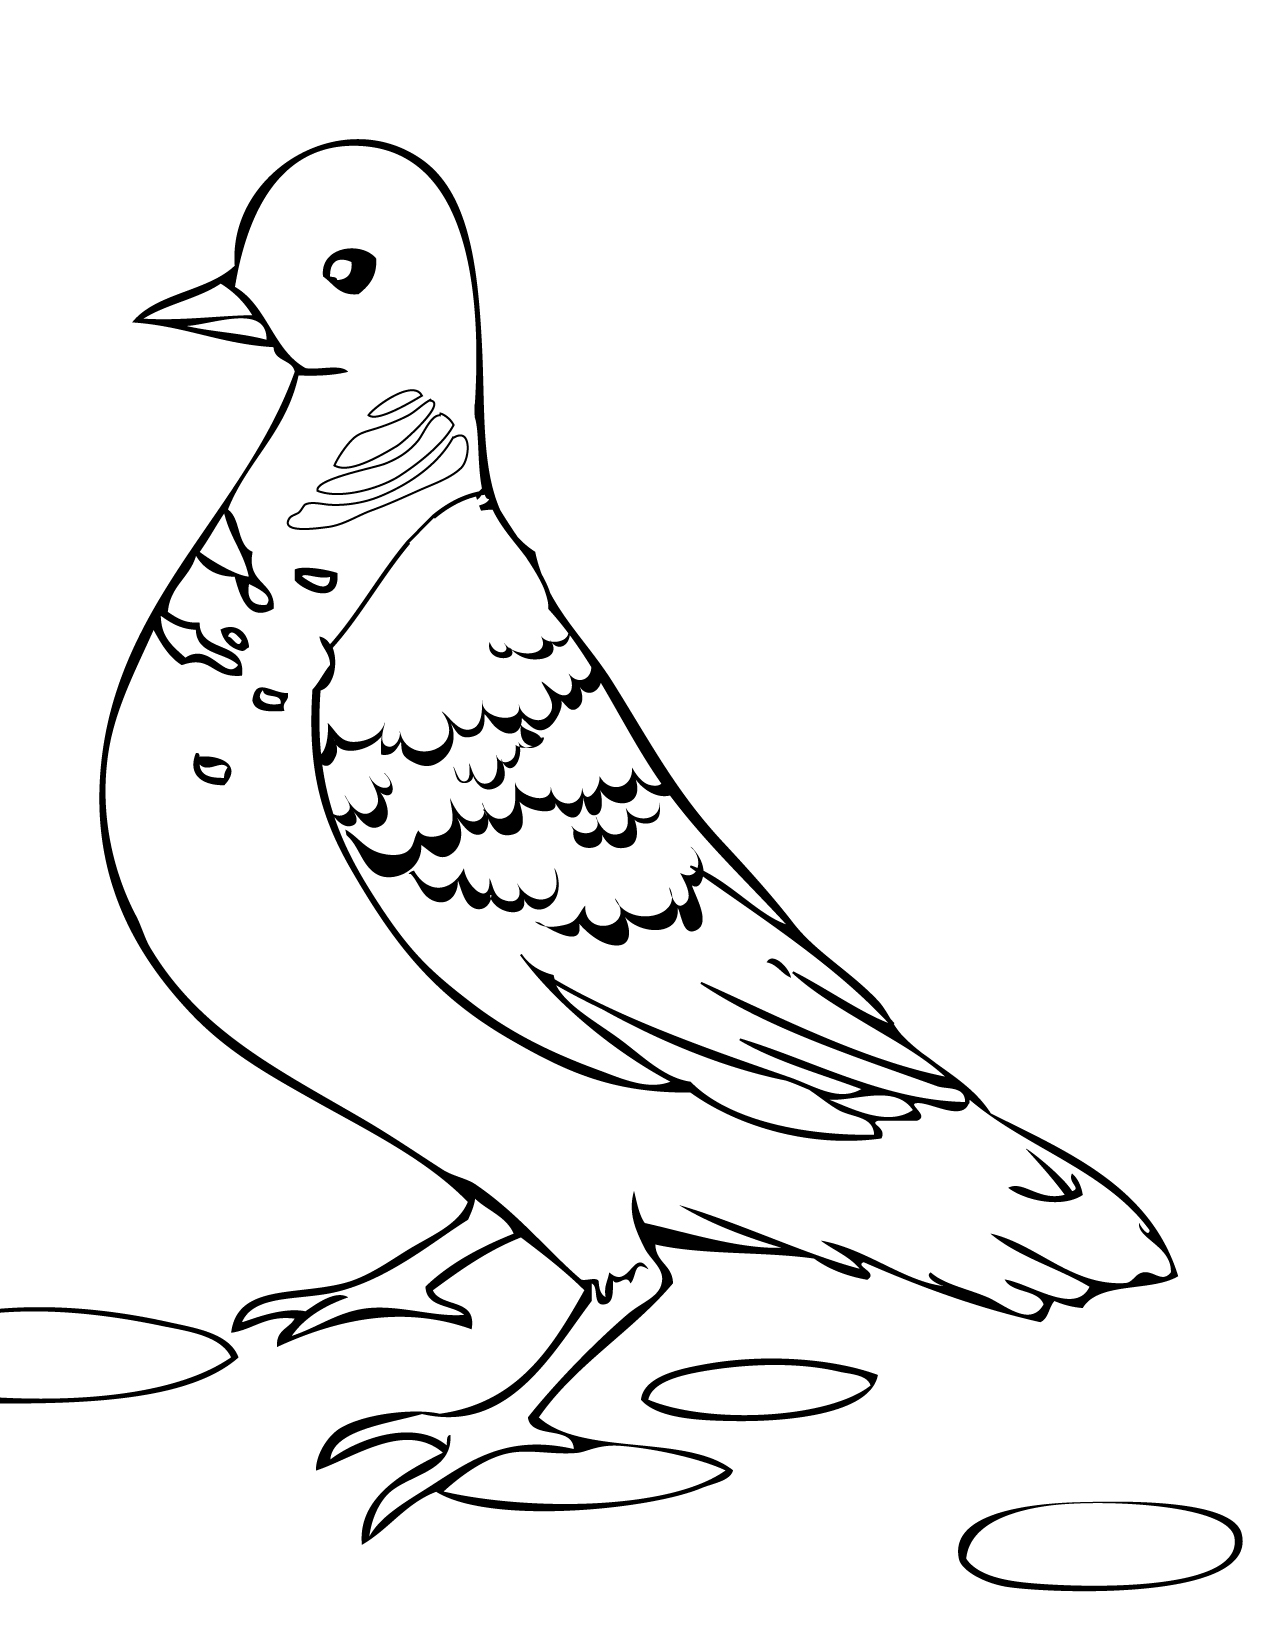 turtle dove template - turtle dove coloring page handipoints